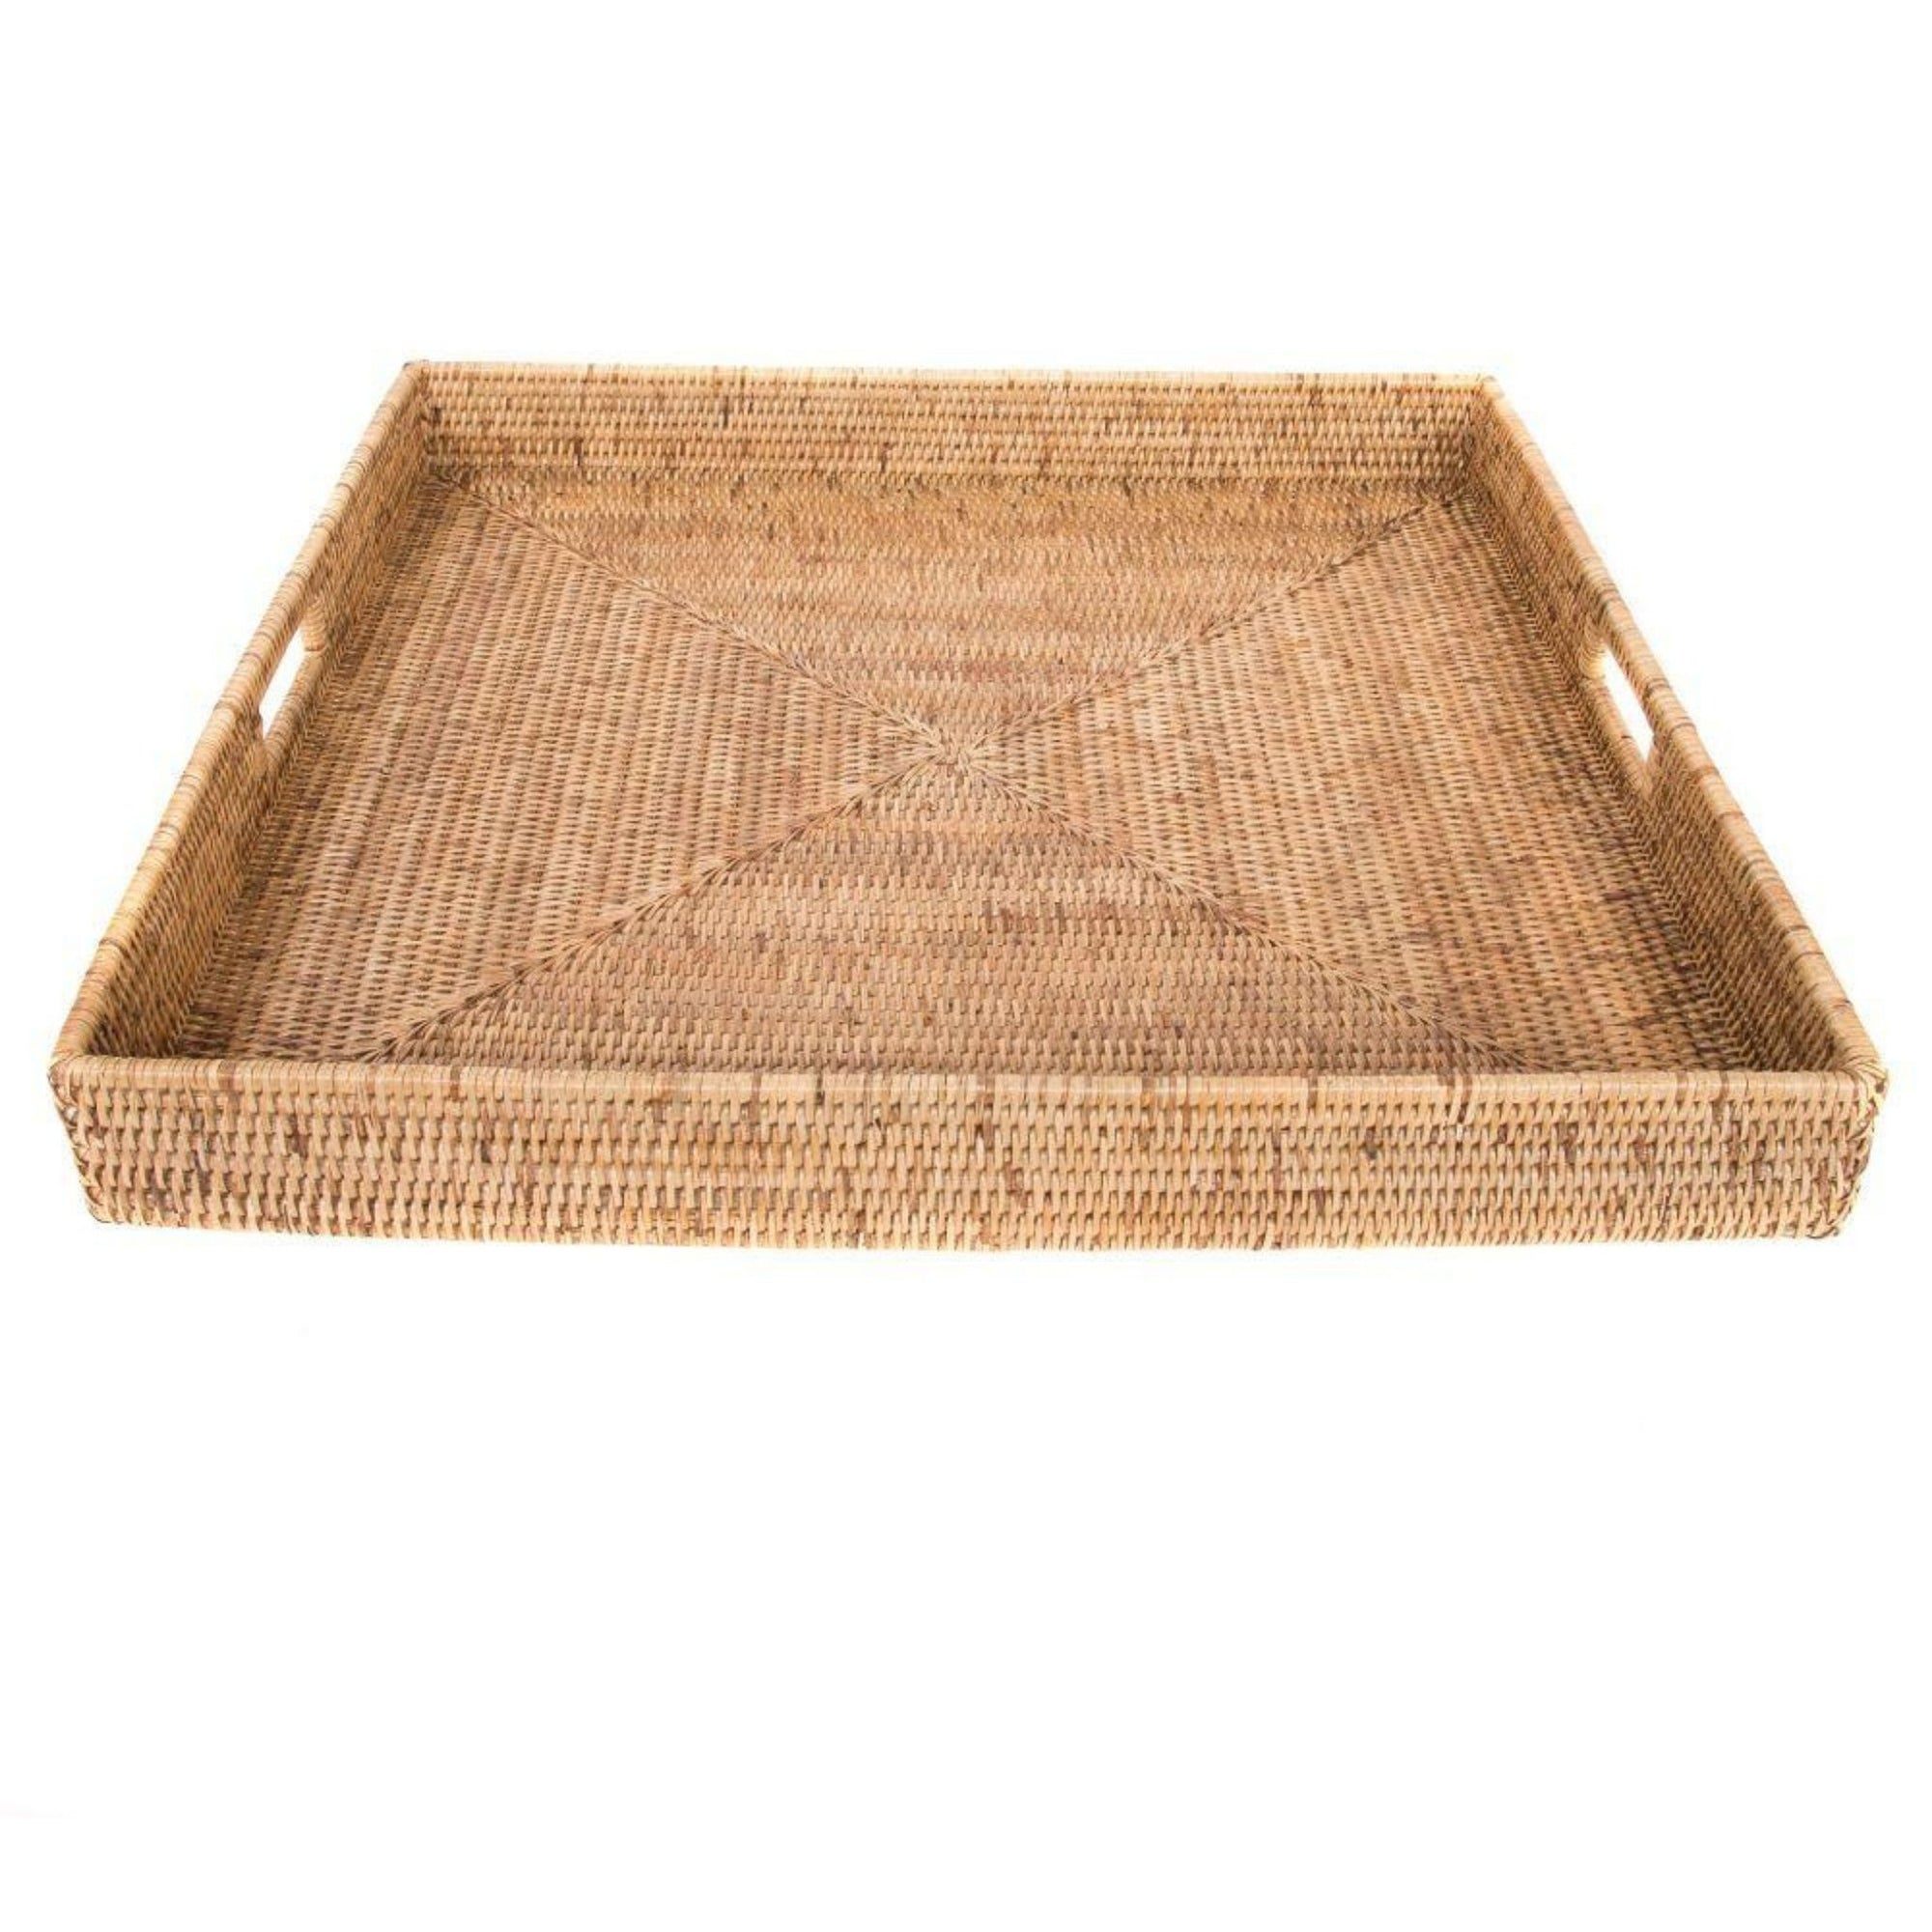 Large Woven Square Tray